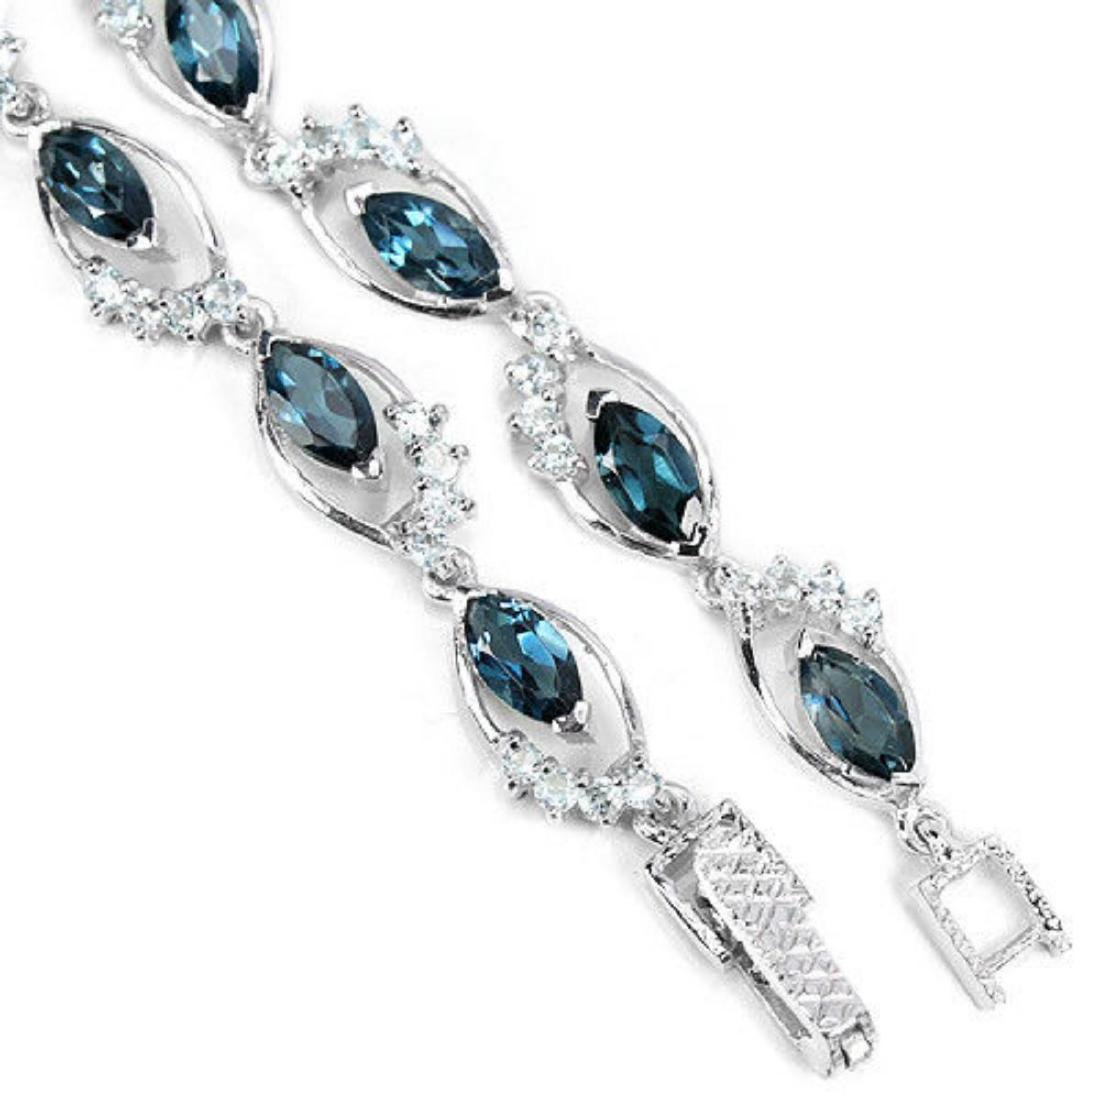 LONDON & SKY BLUE TOPAZ Bracelet - 3